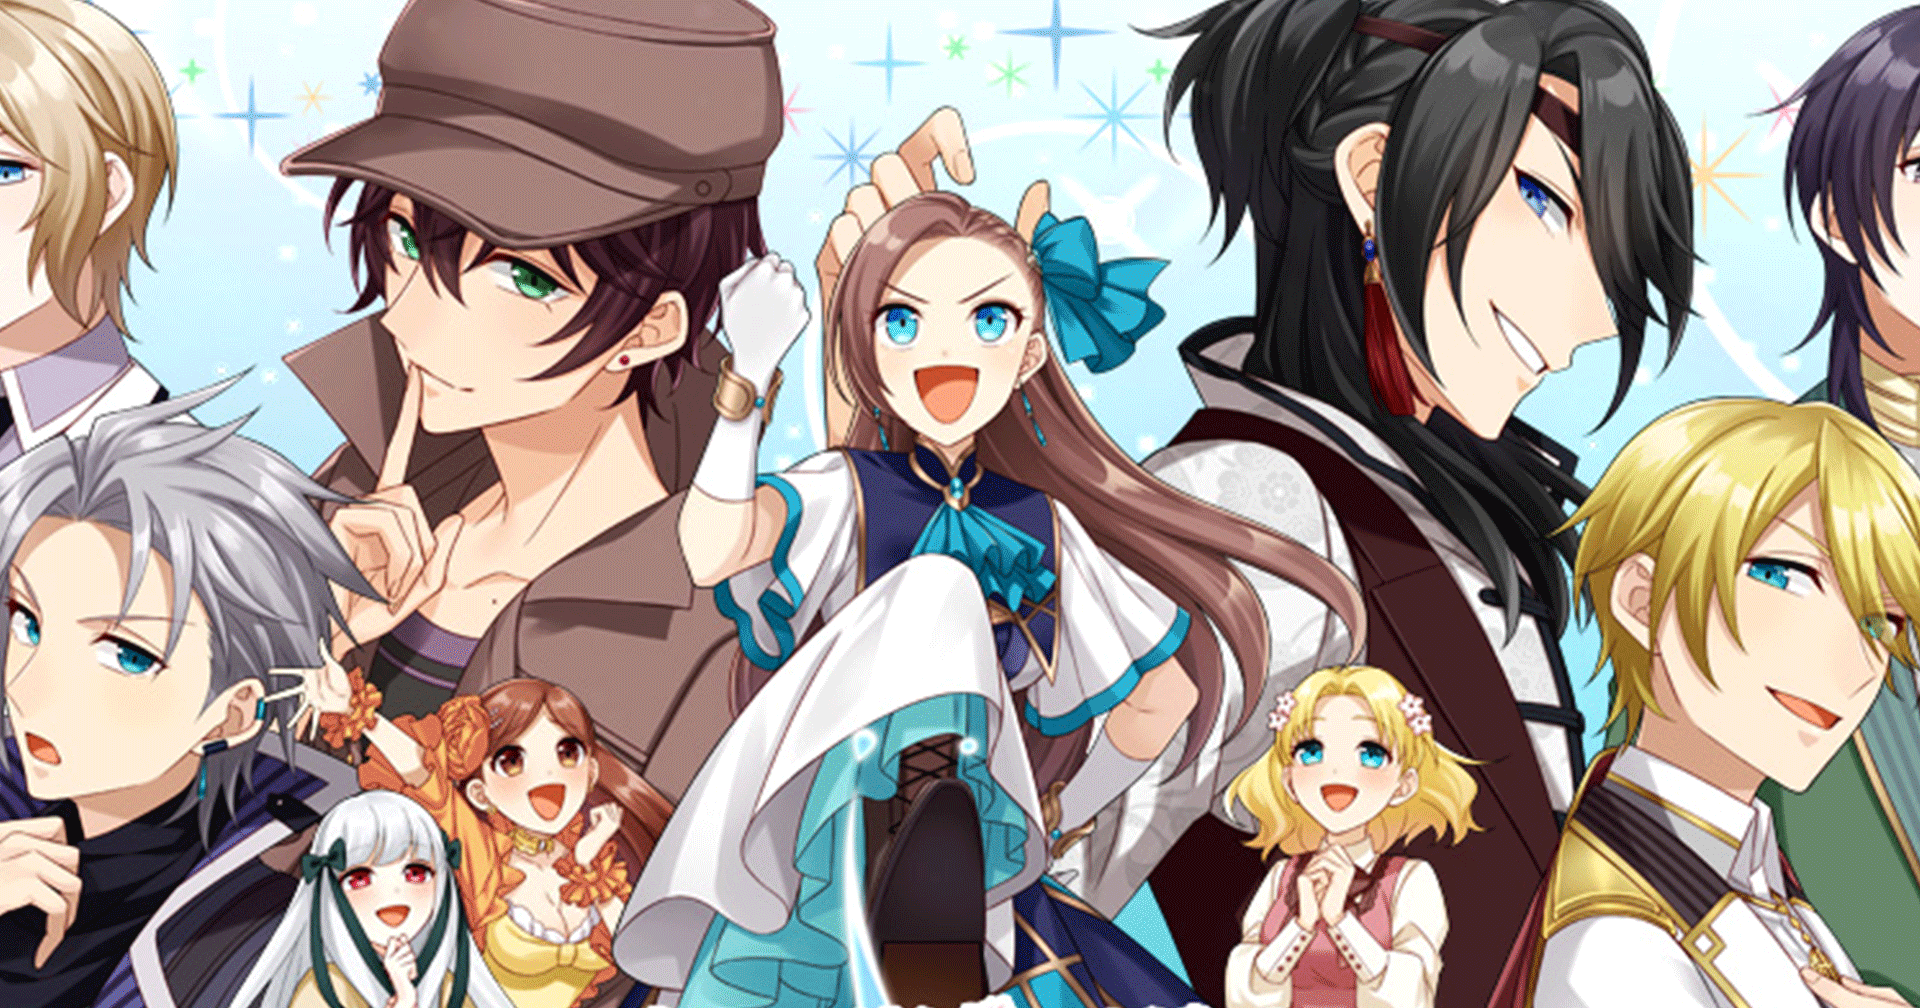 My Next Life as a Villainess: All Routes Lead to Doom! – Pirates that Stir the Waters